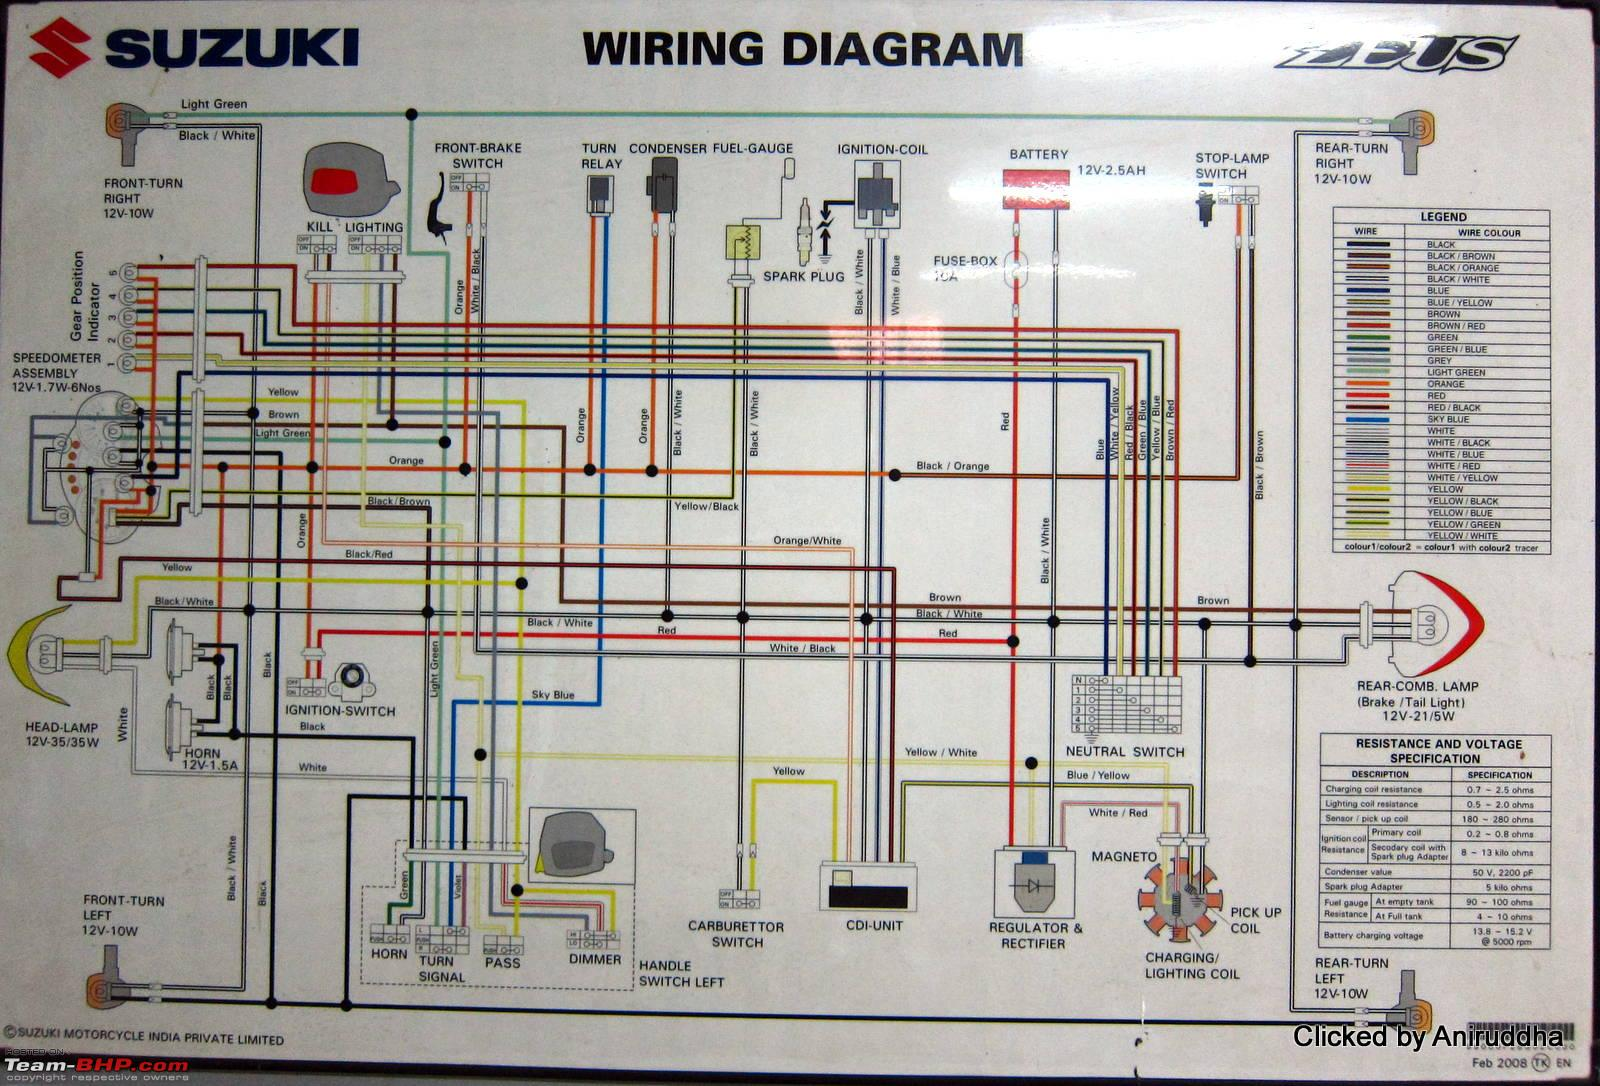 Wiring Diagrams Of Indian Two Wheelers Team Bhp Single Headlight Schematic Click Image For Larger View Img 0731